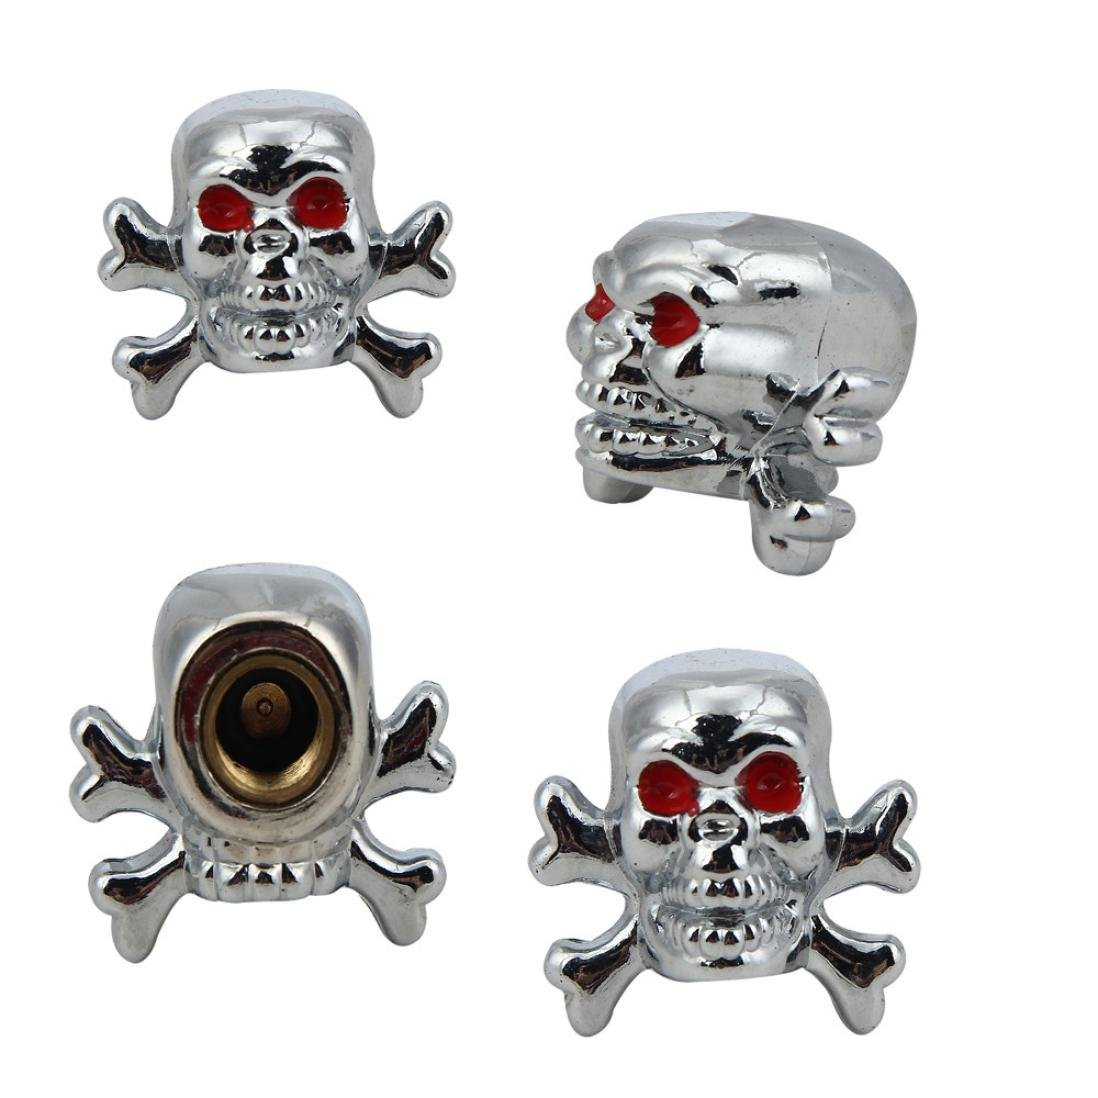 Glumes Sivler Skull Tire/Wheel Stem Air Valve Caps Covers, for Car, Truck, Hot Rod ATV, Motorbike, Bike, 4pcs (Silvery)